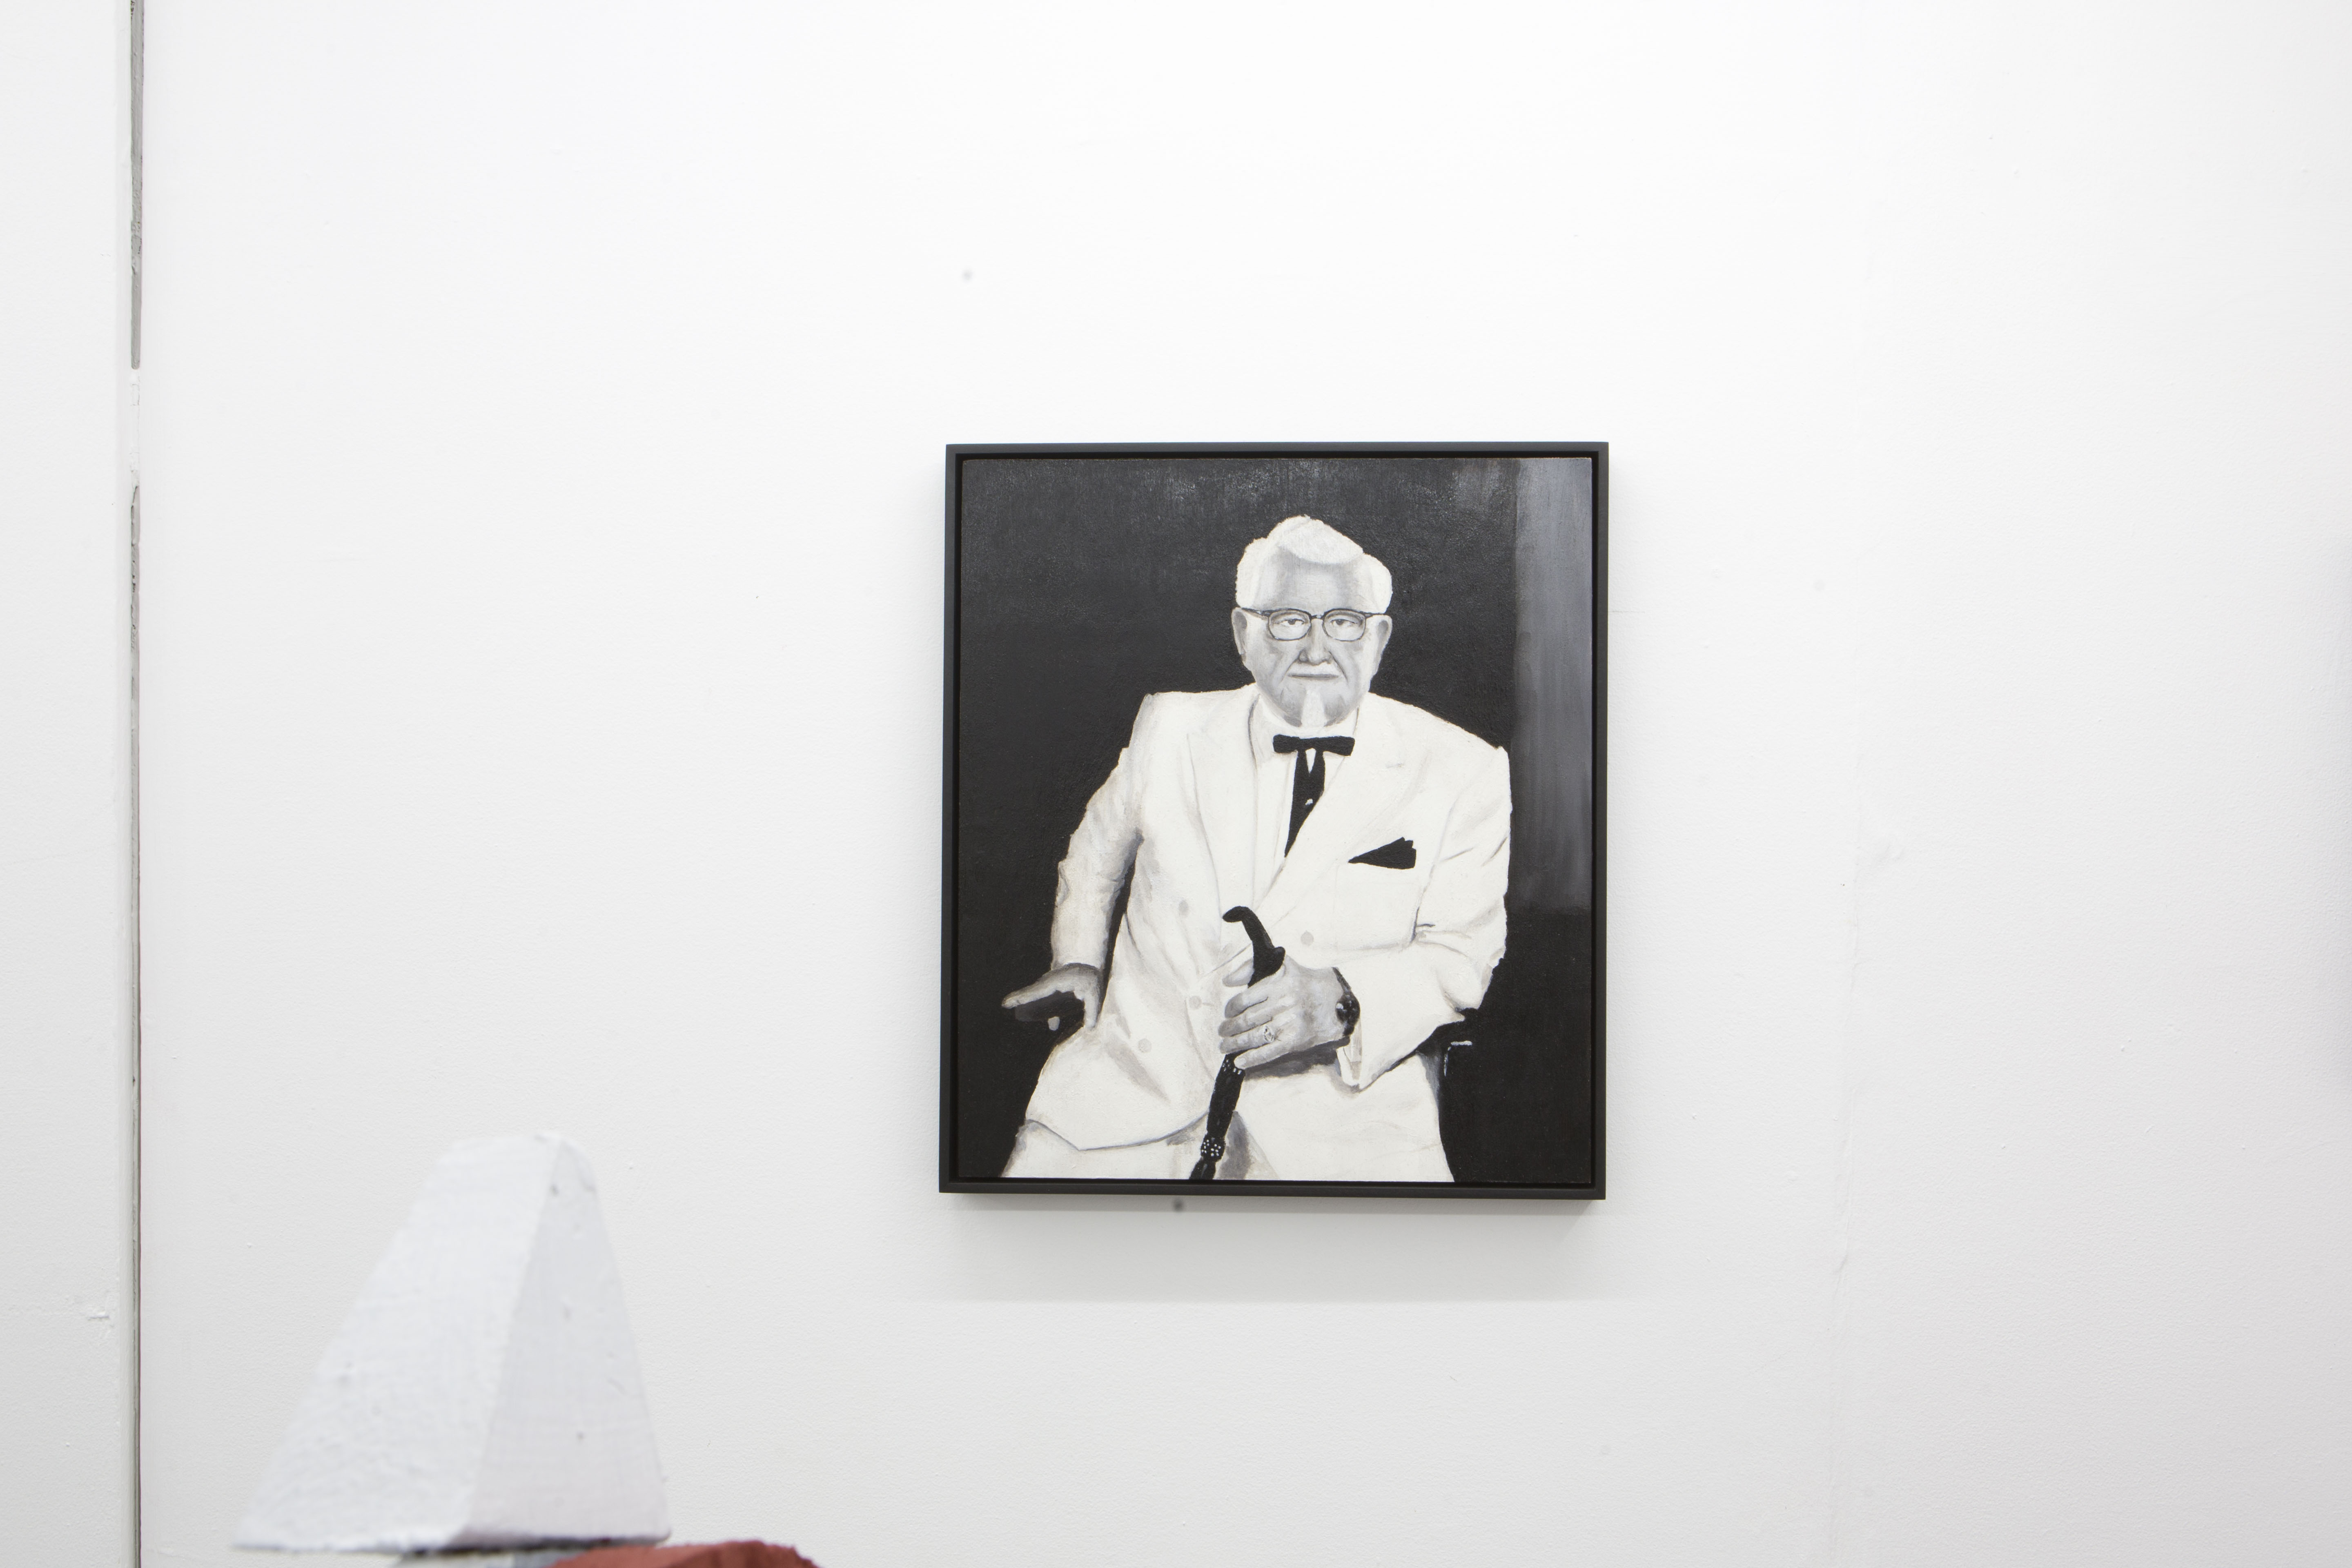 Jack Hirons Colonel Sanders (2019) 40x35cm; Oil paint made from charred discarded chicken bones on board.